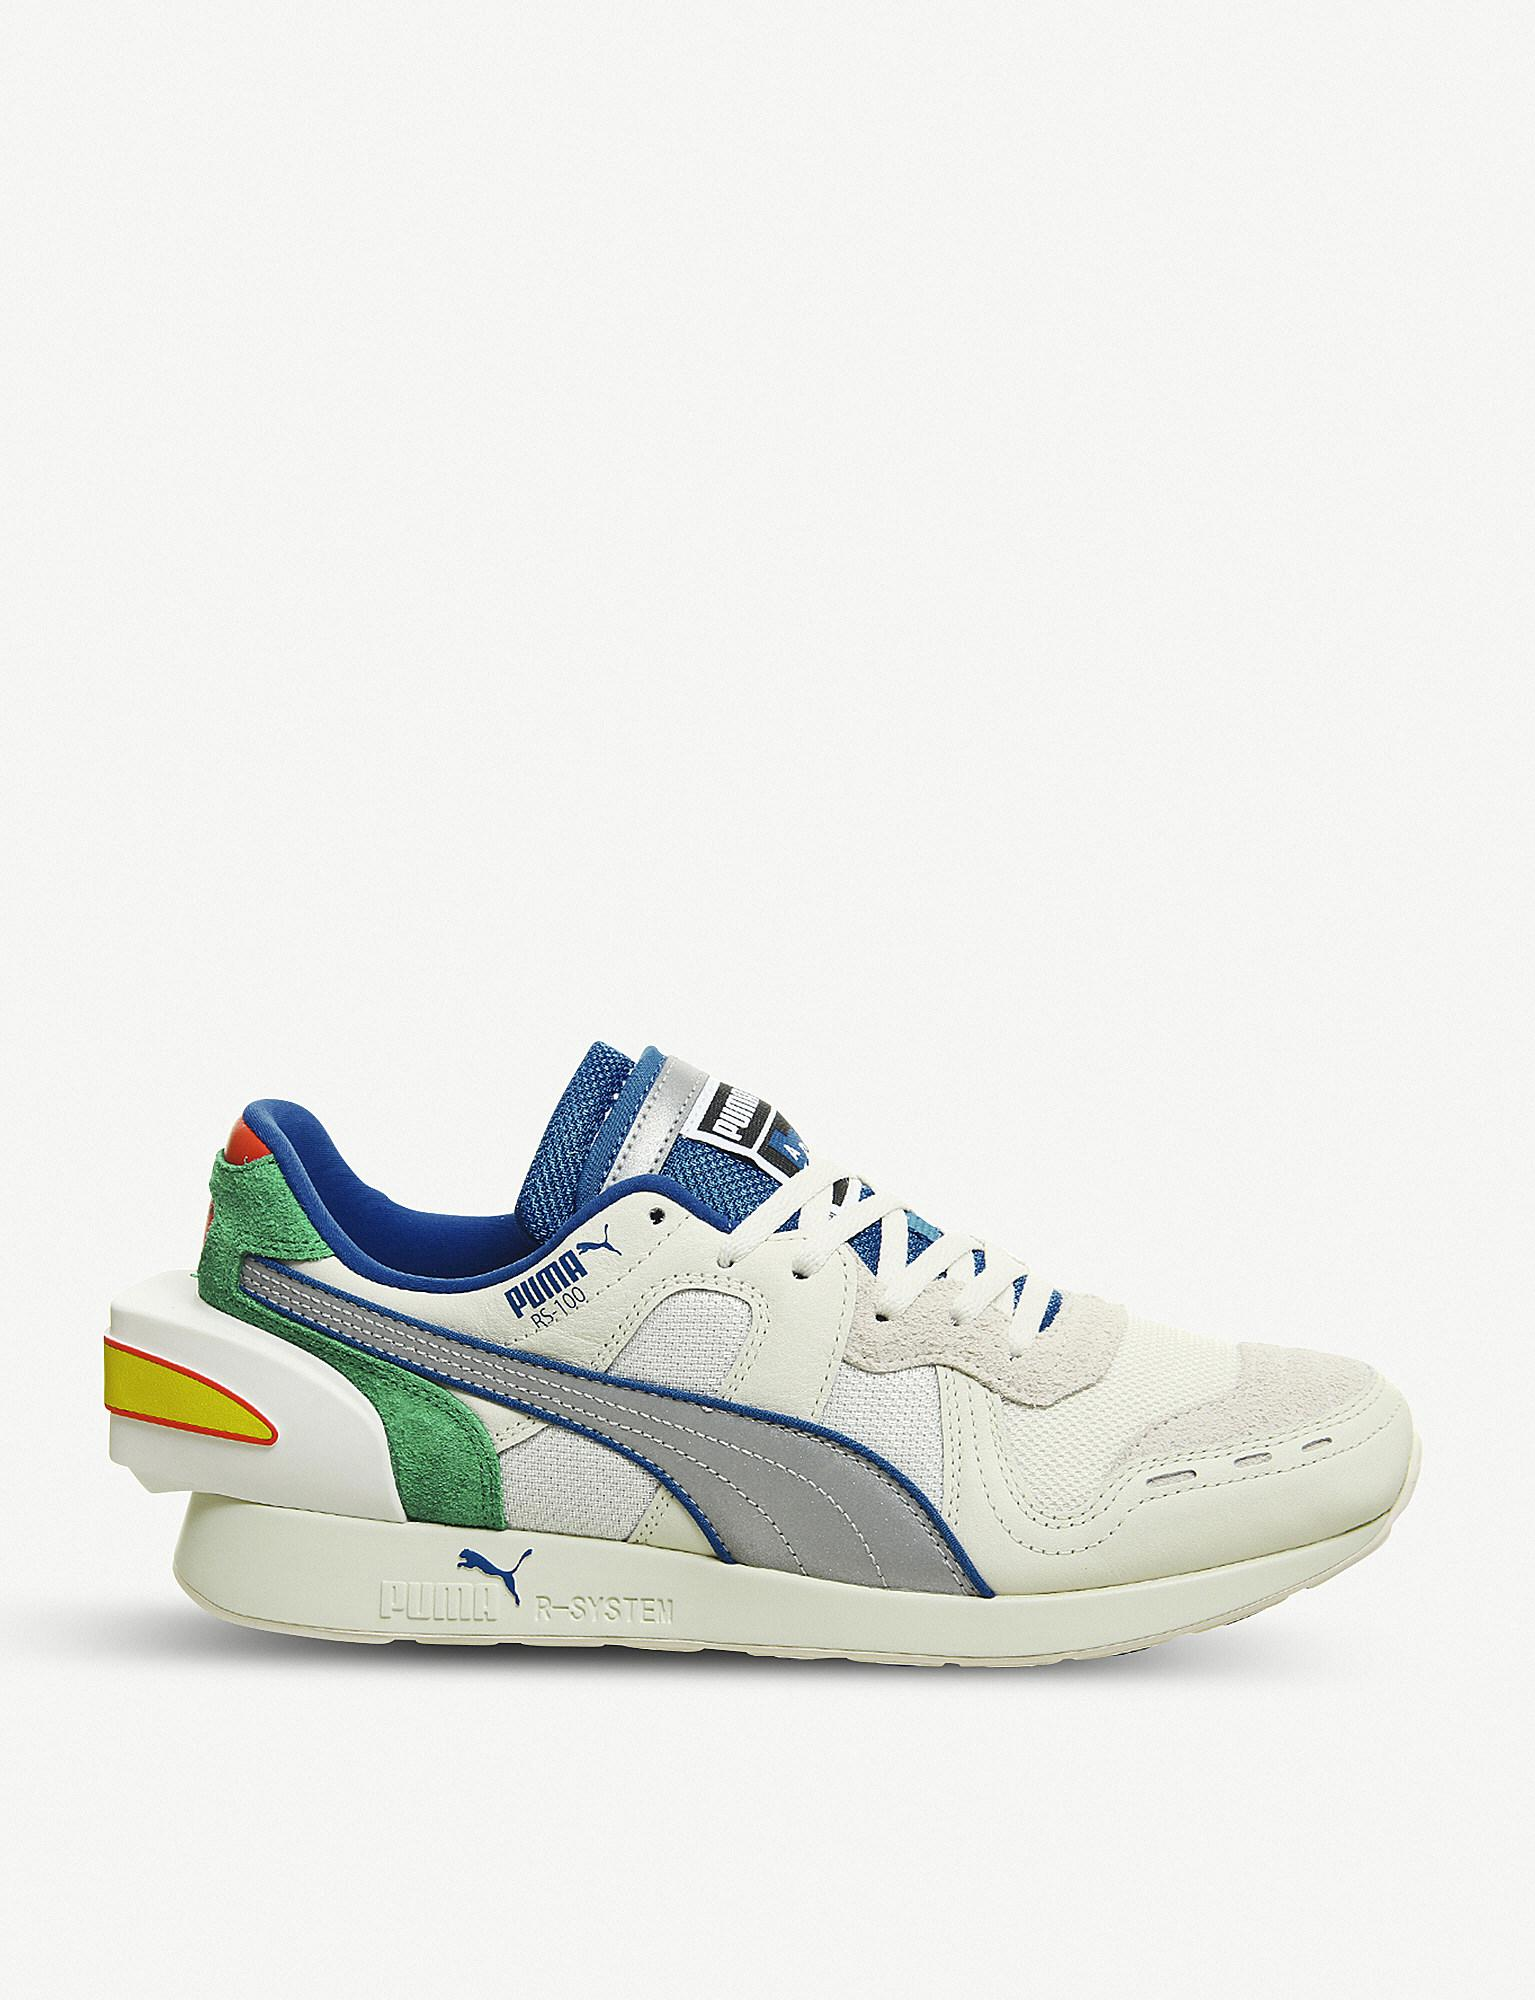 b10089fcc446b4 Puma X Ader Error Rs-100 Suede And Mesh Trainers in Blue for Men - Lyst